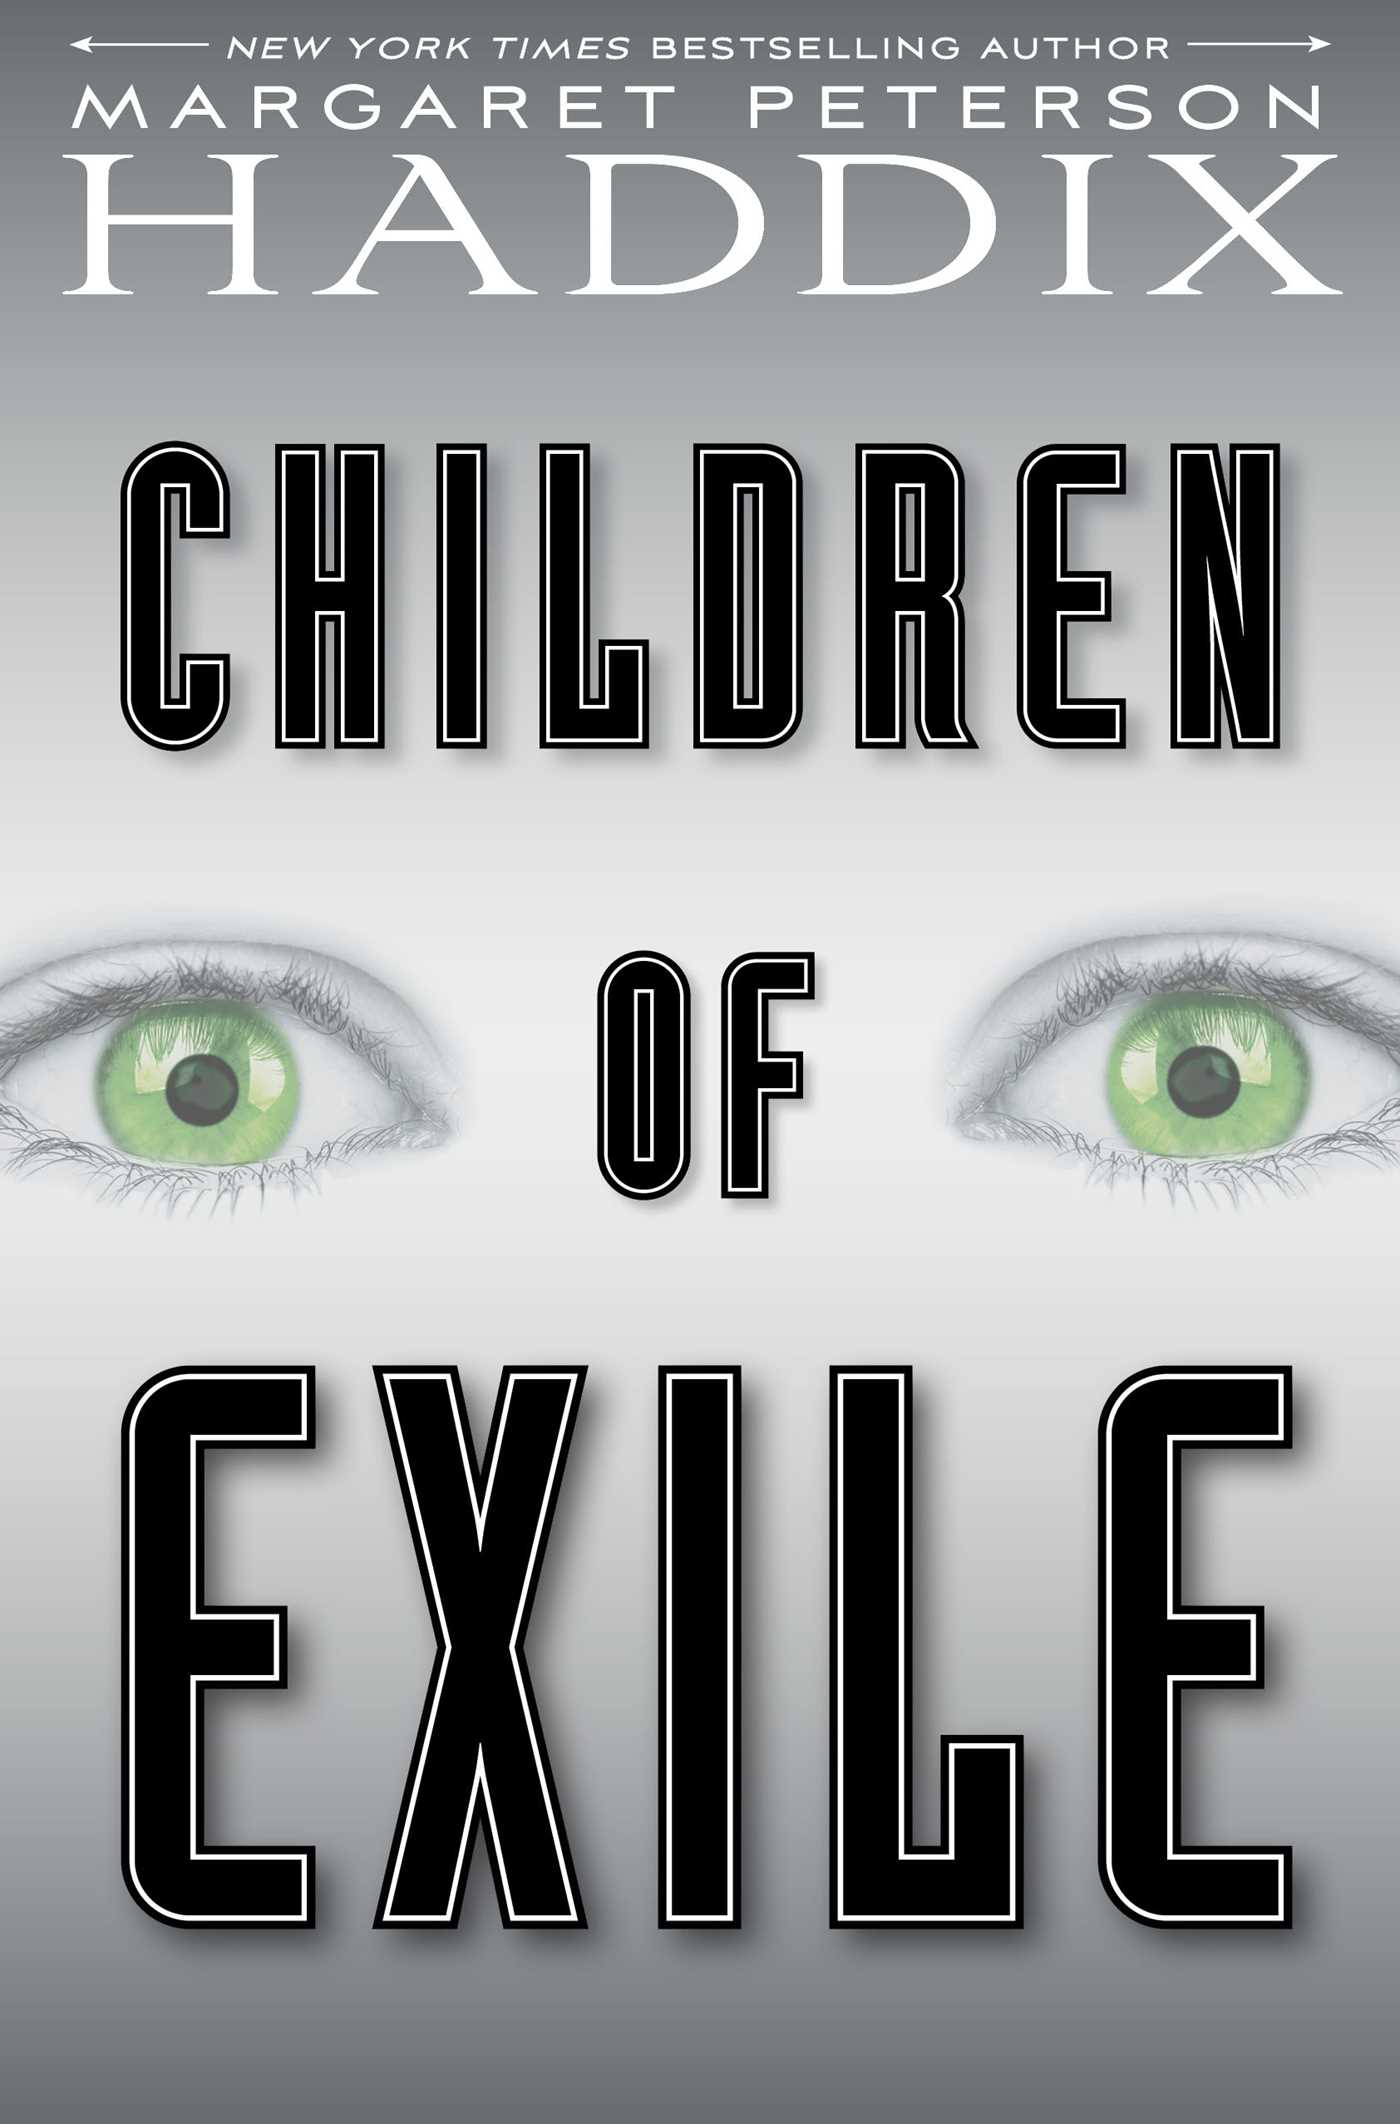 Image result for children exile haddix